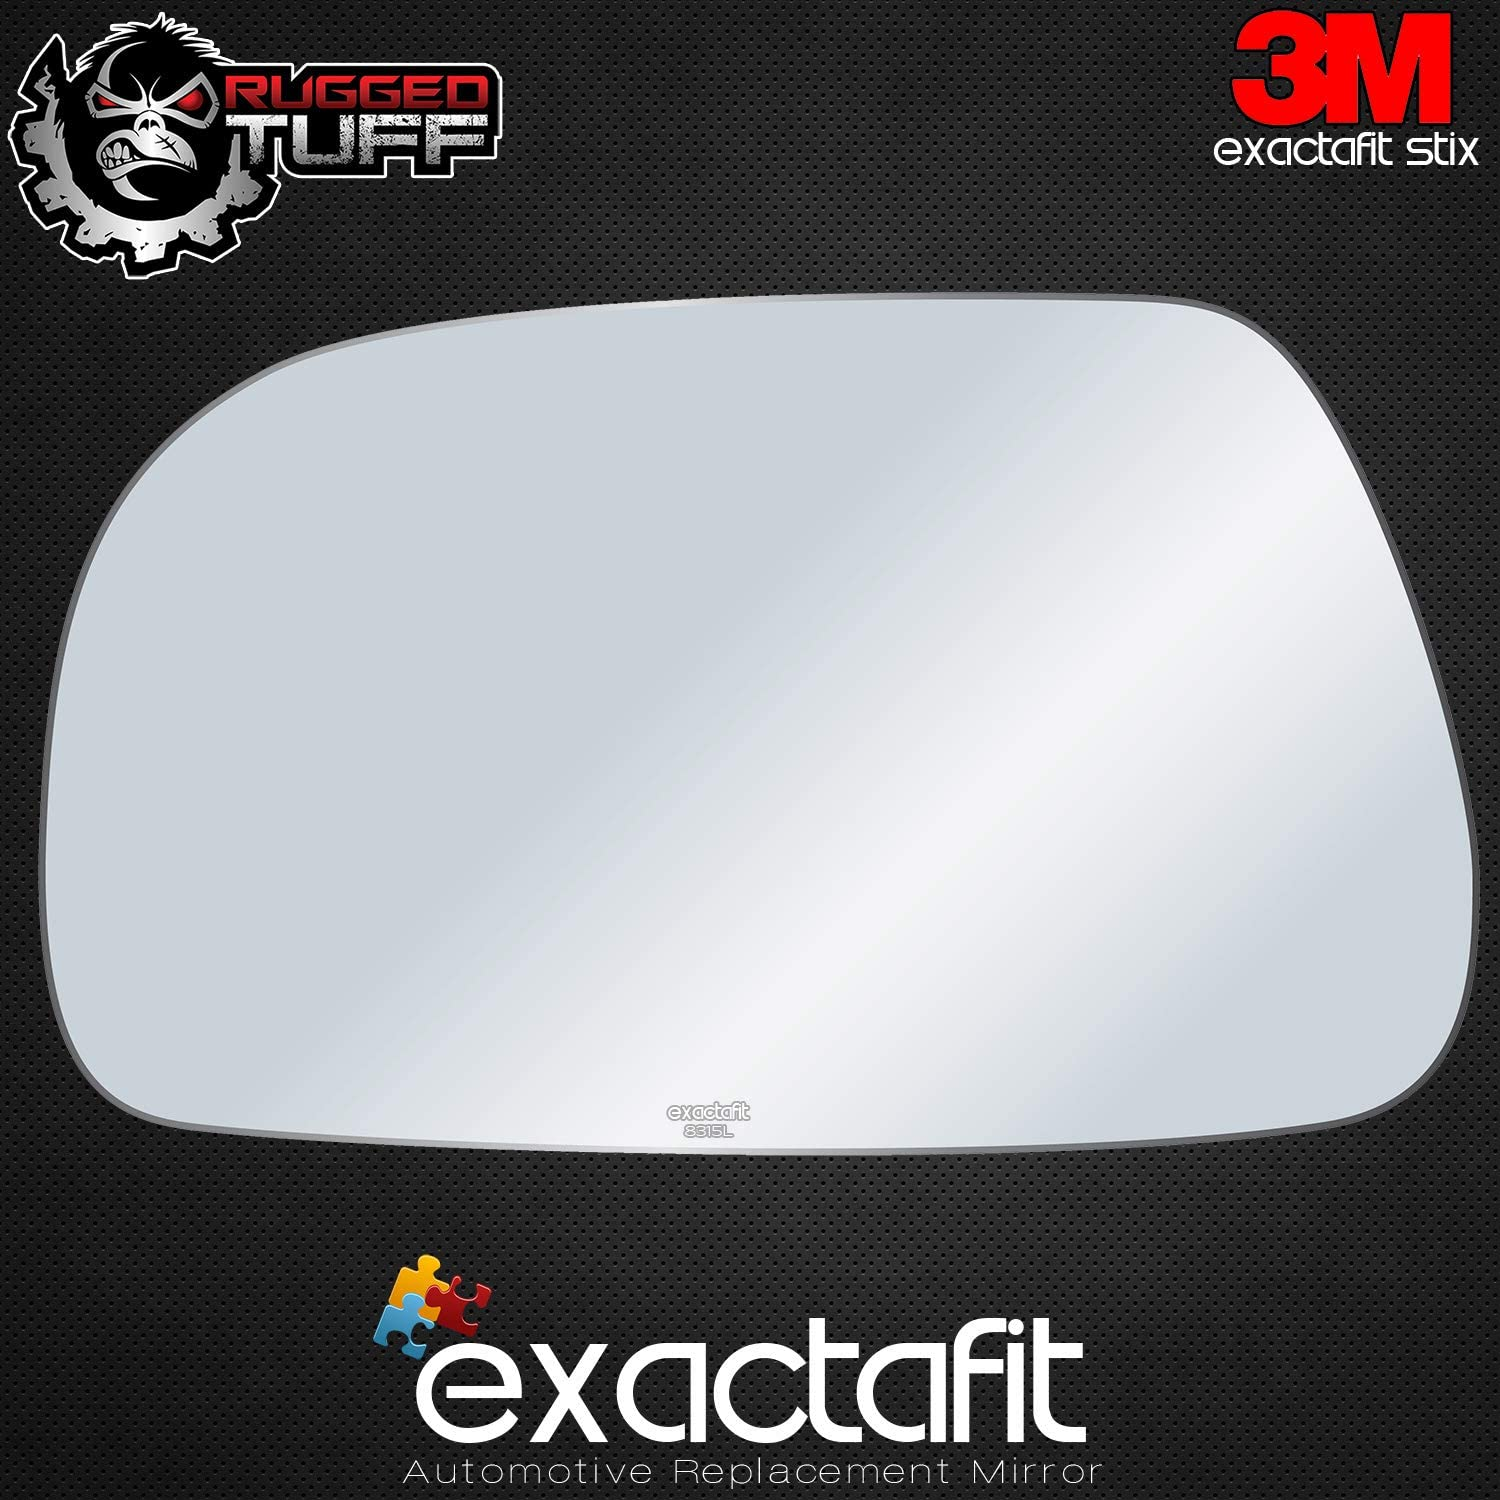 exactafit 8315L Driver Left Side Mirror Glass Replacement fits 2004-2005 Chrysler Pacifica by Rugged TUFF